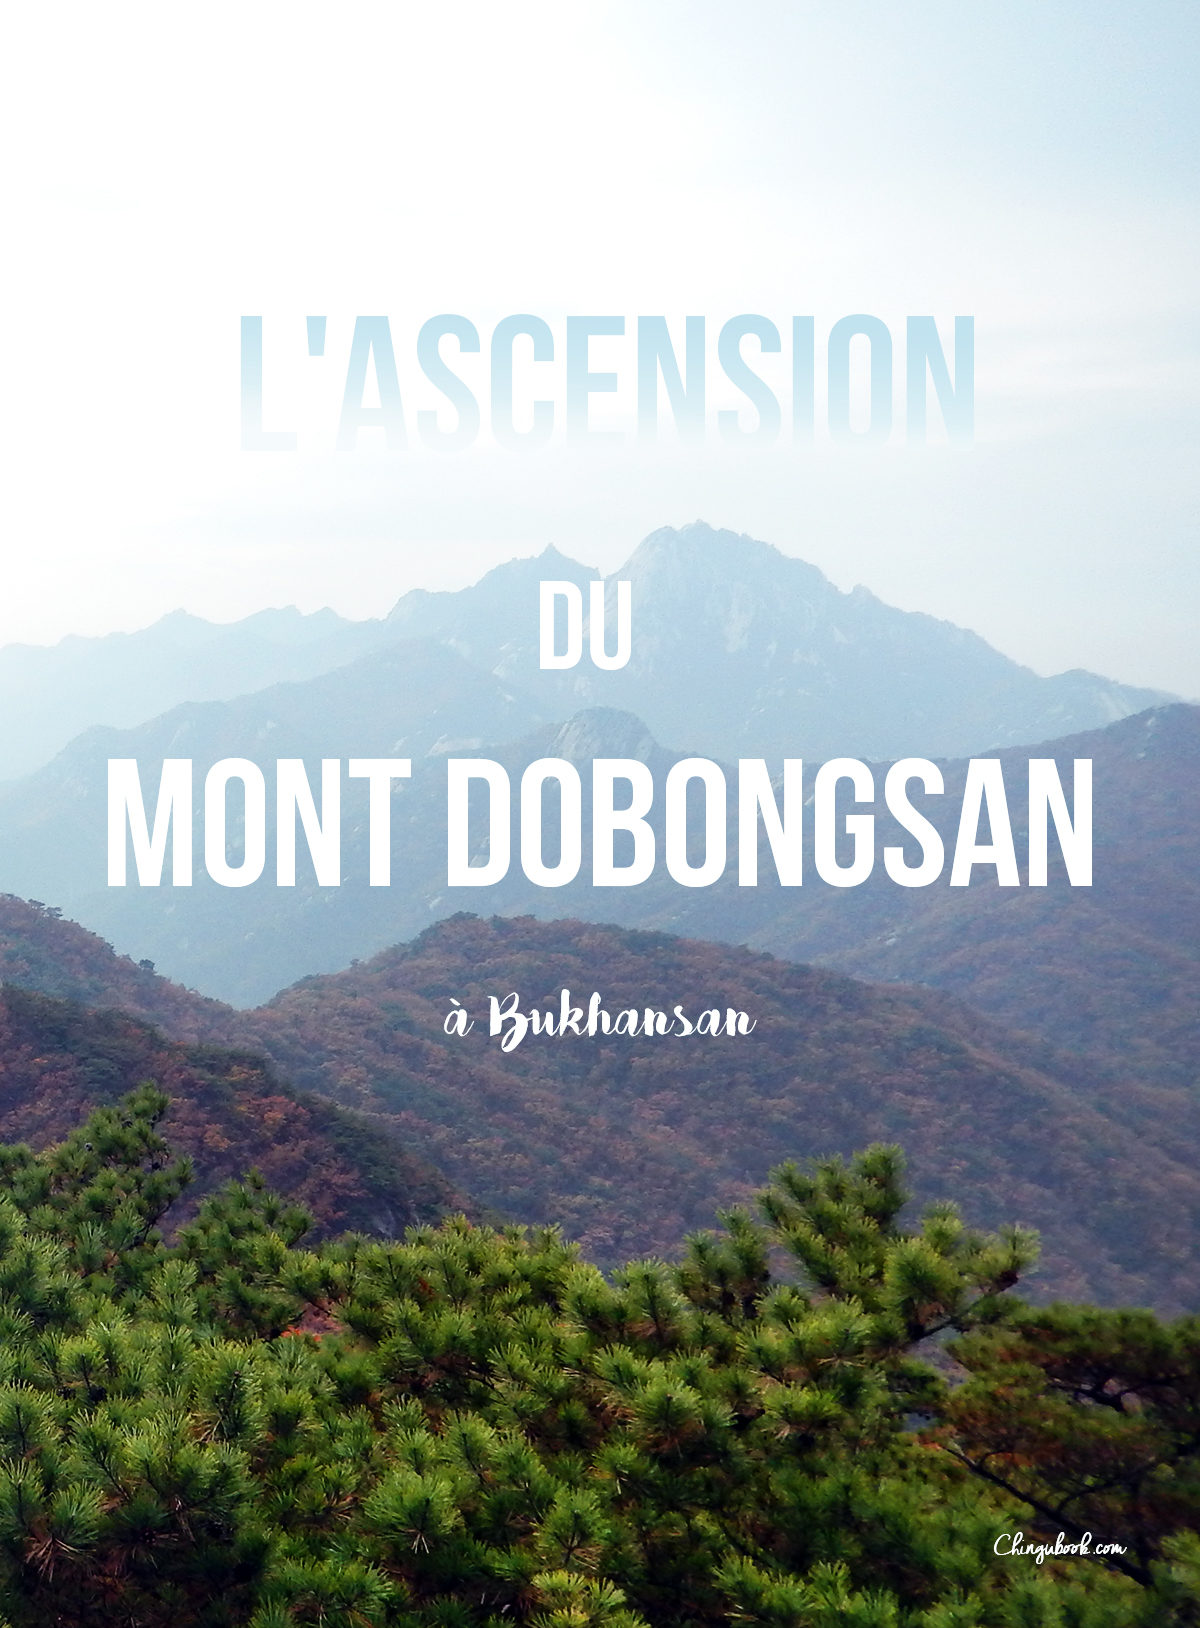 L'ascension du mont Dobongsan à Bukhansan